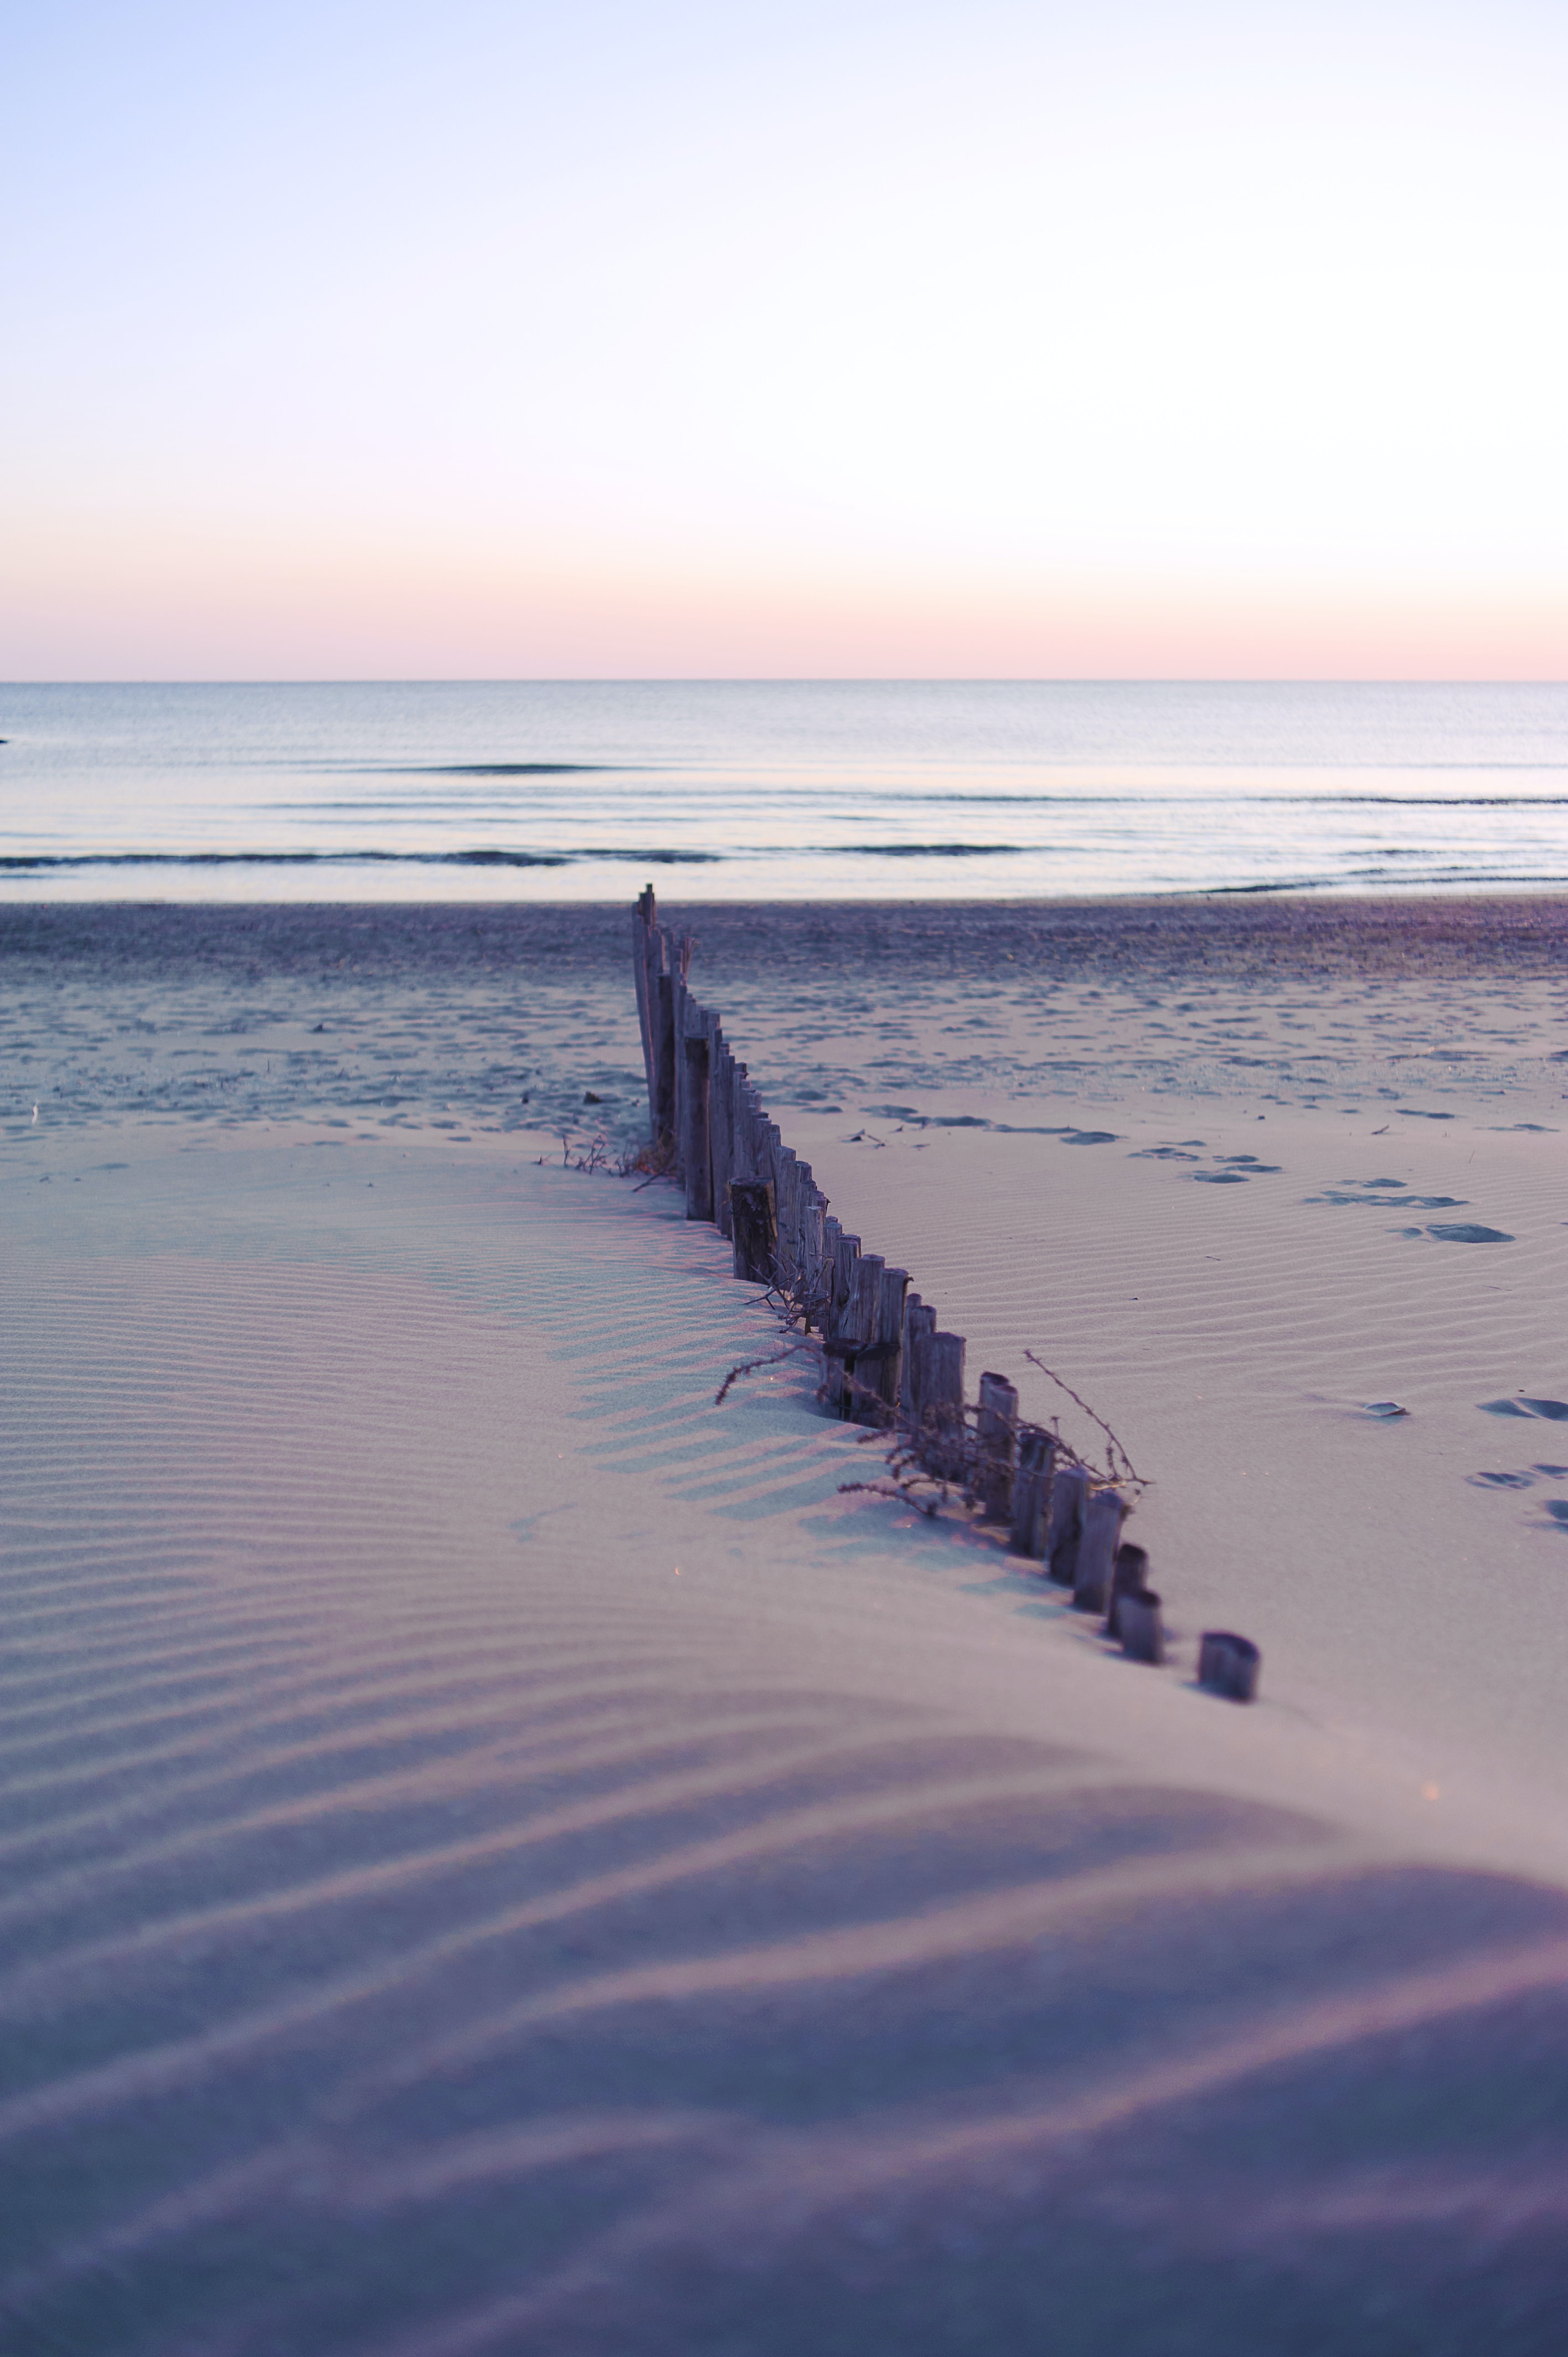 brown wooden fence on seashore at daytime